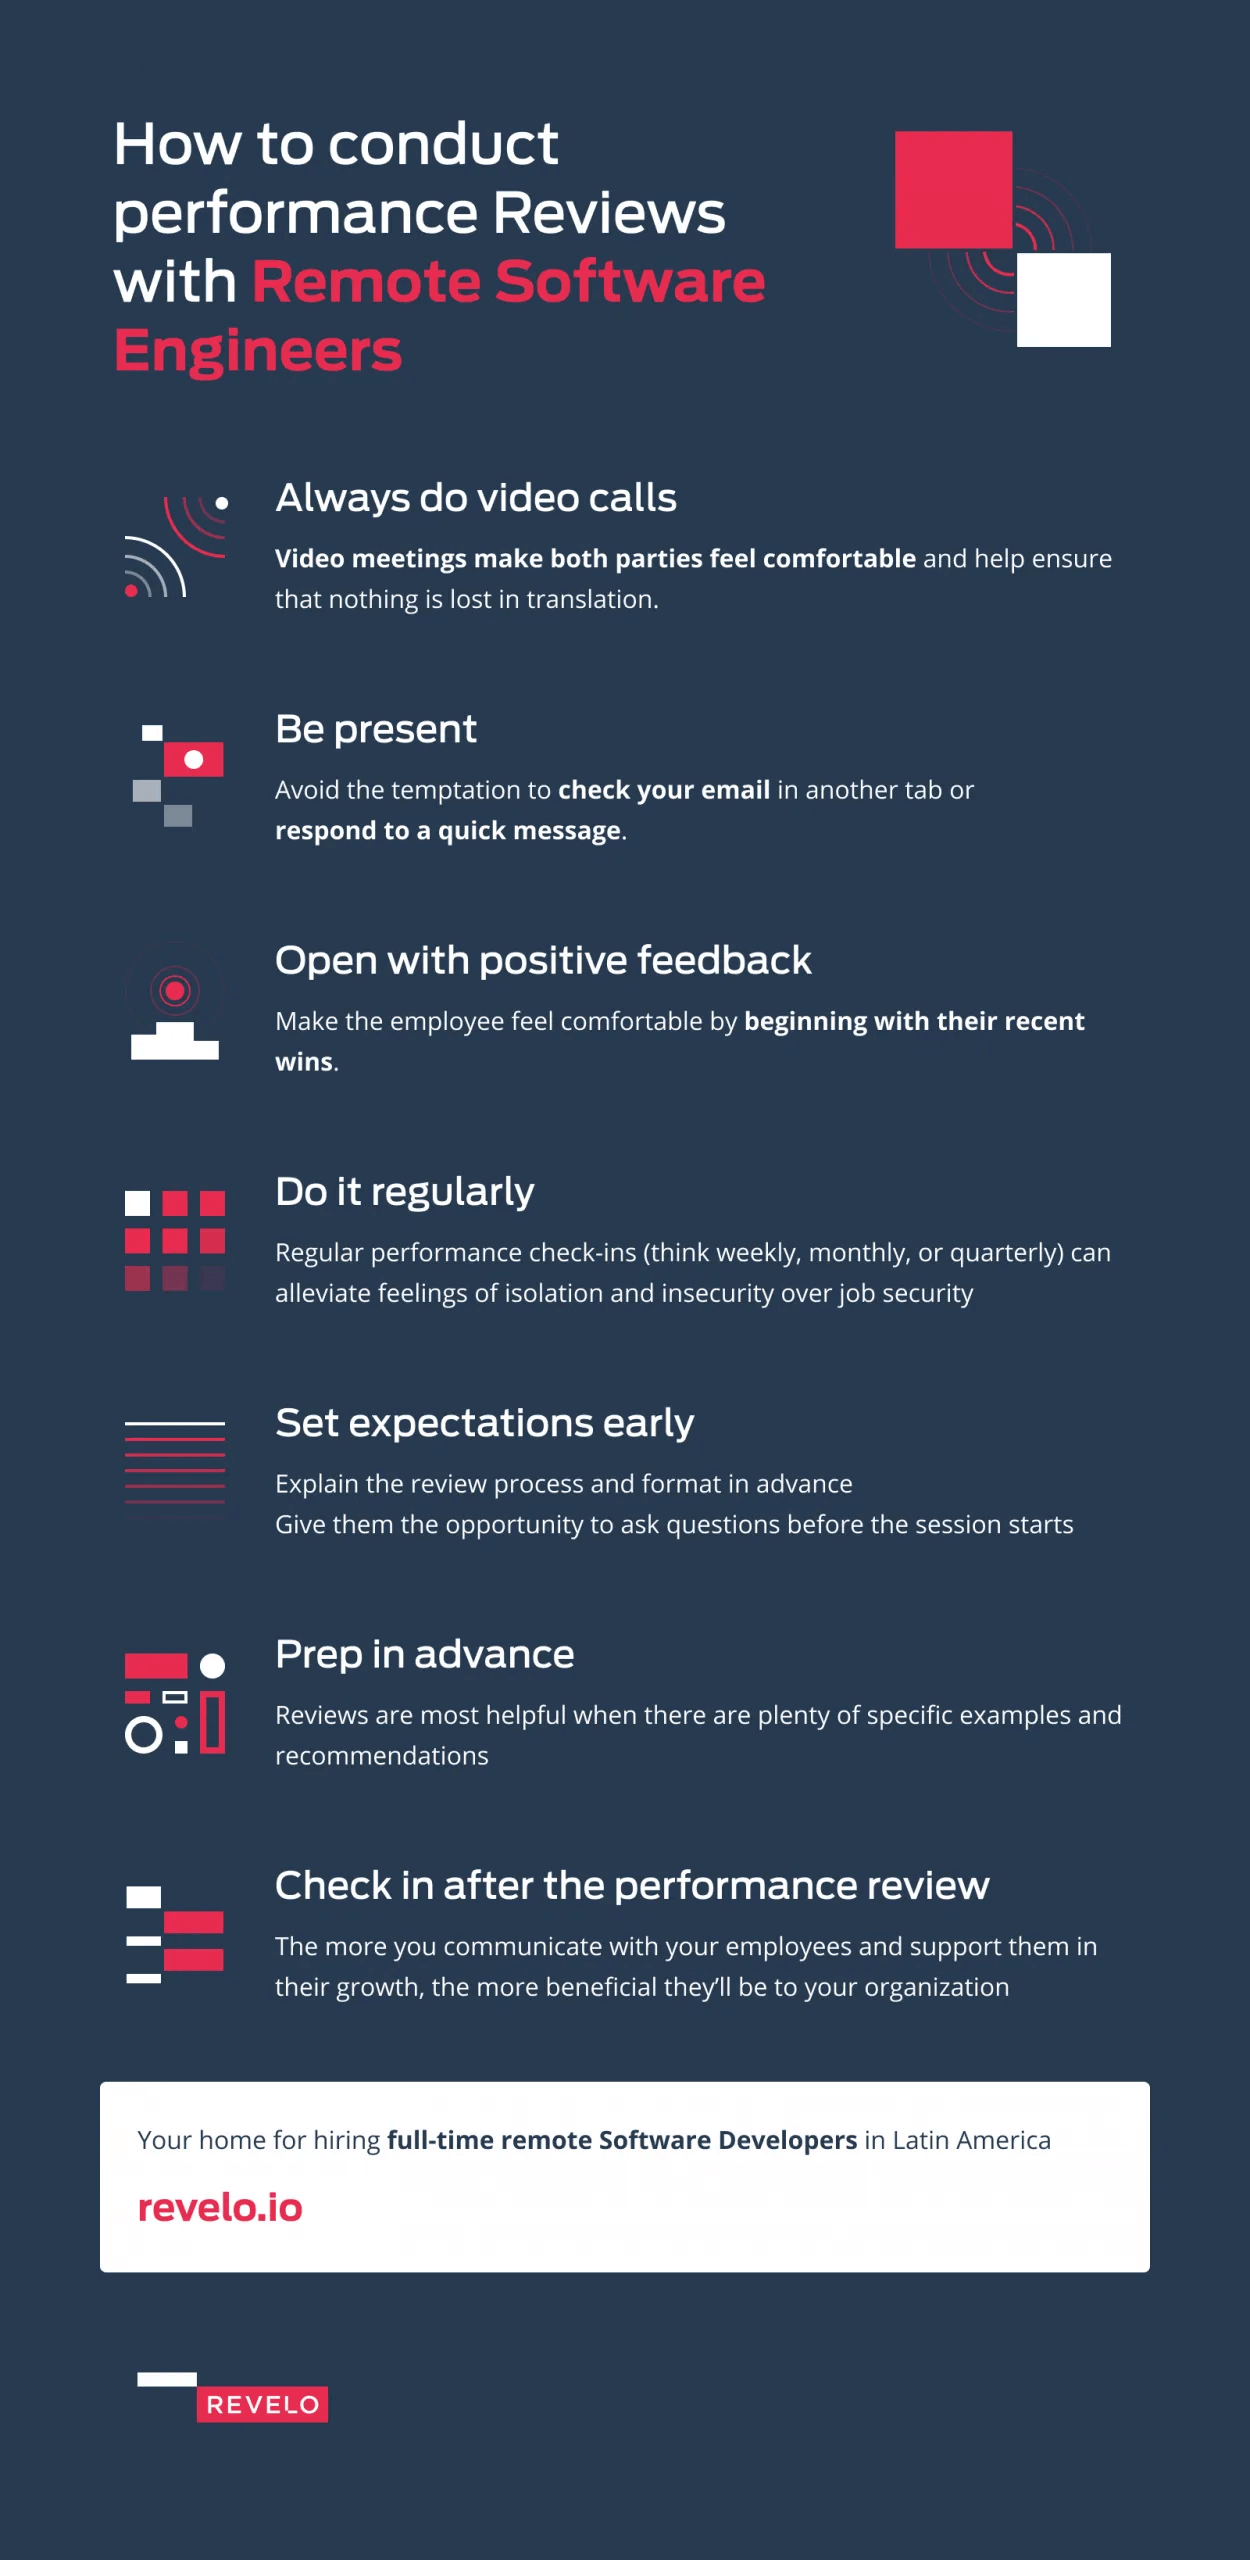 How to conduct performance reviews with remote software engineers